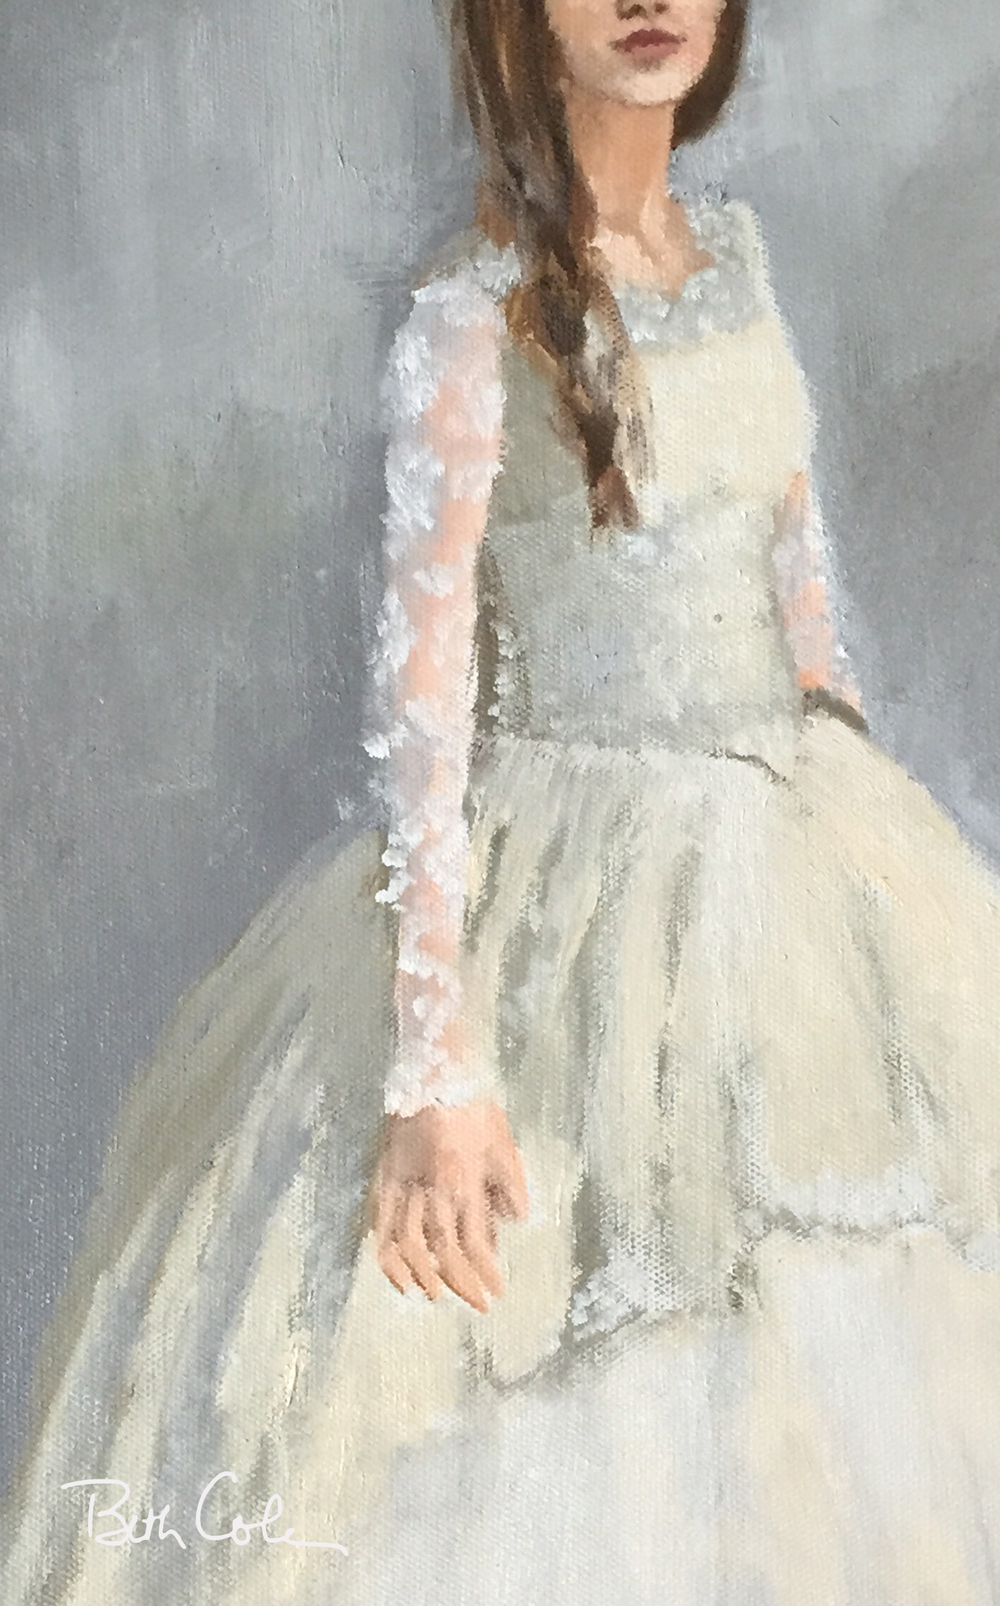 Cropped Version of Wedding Dress III © Beth Cole